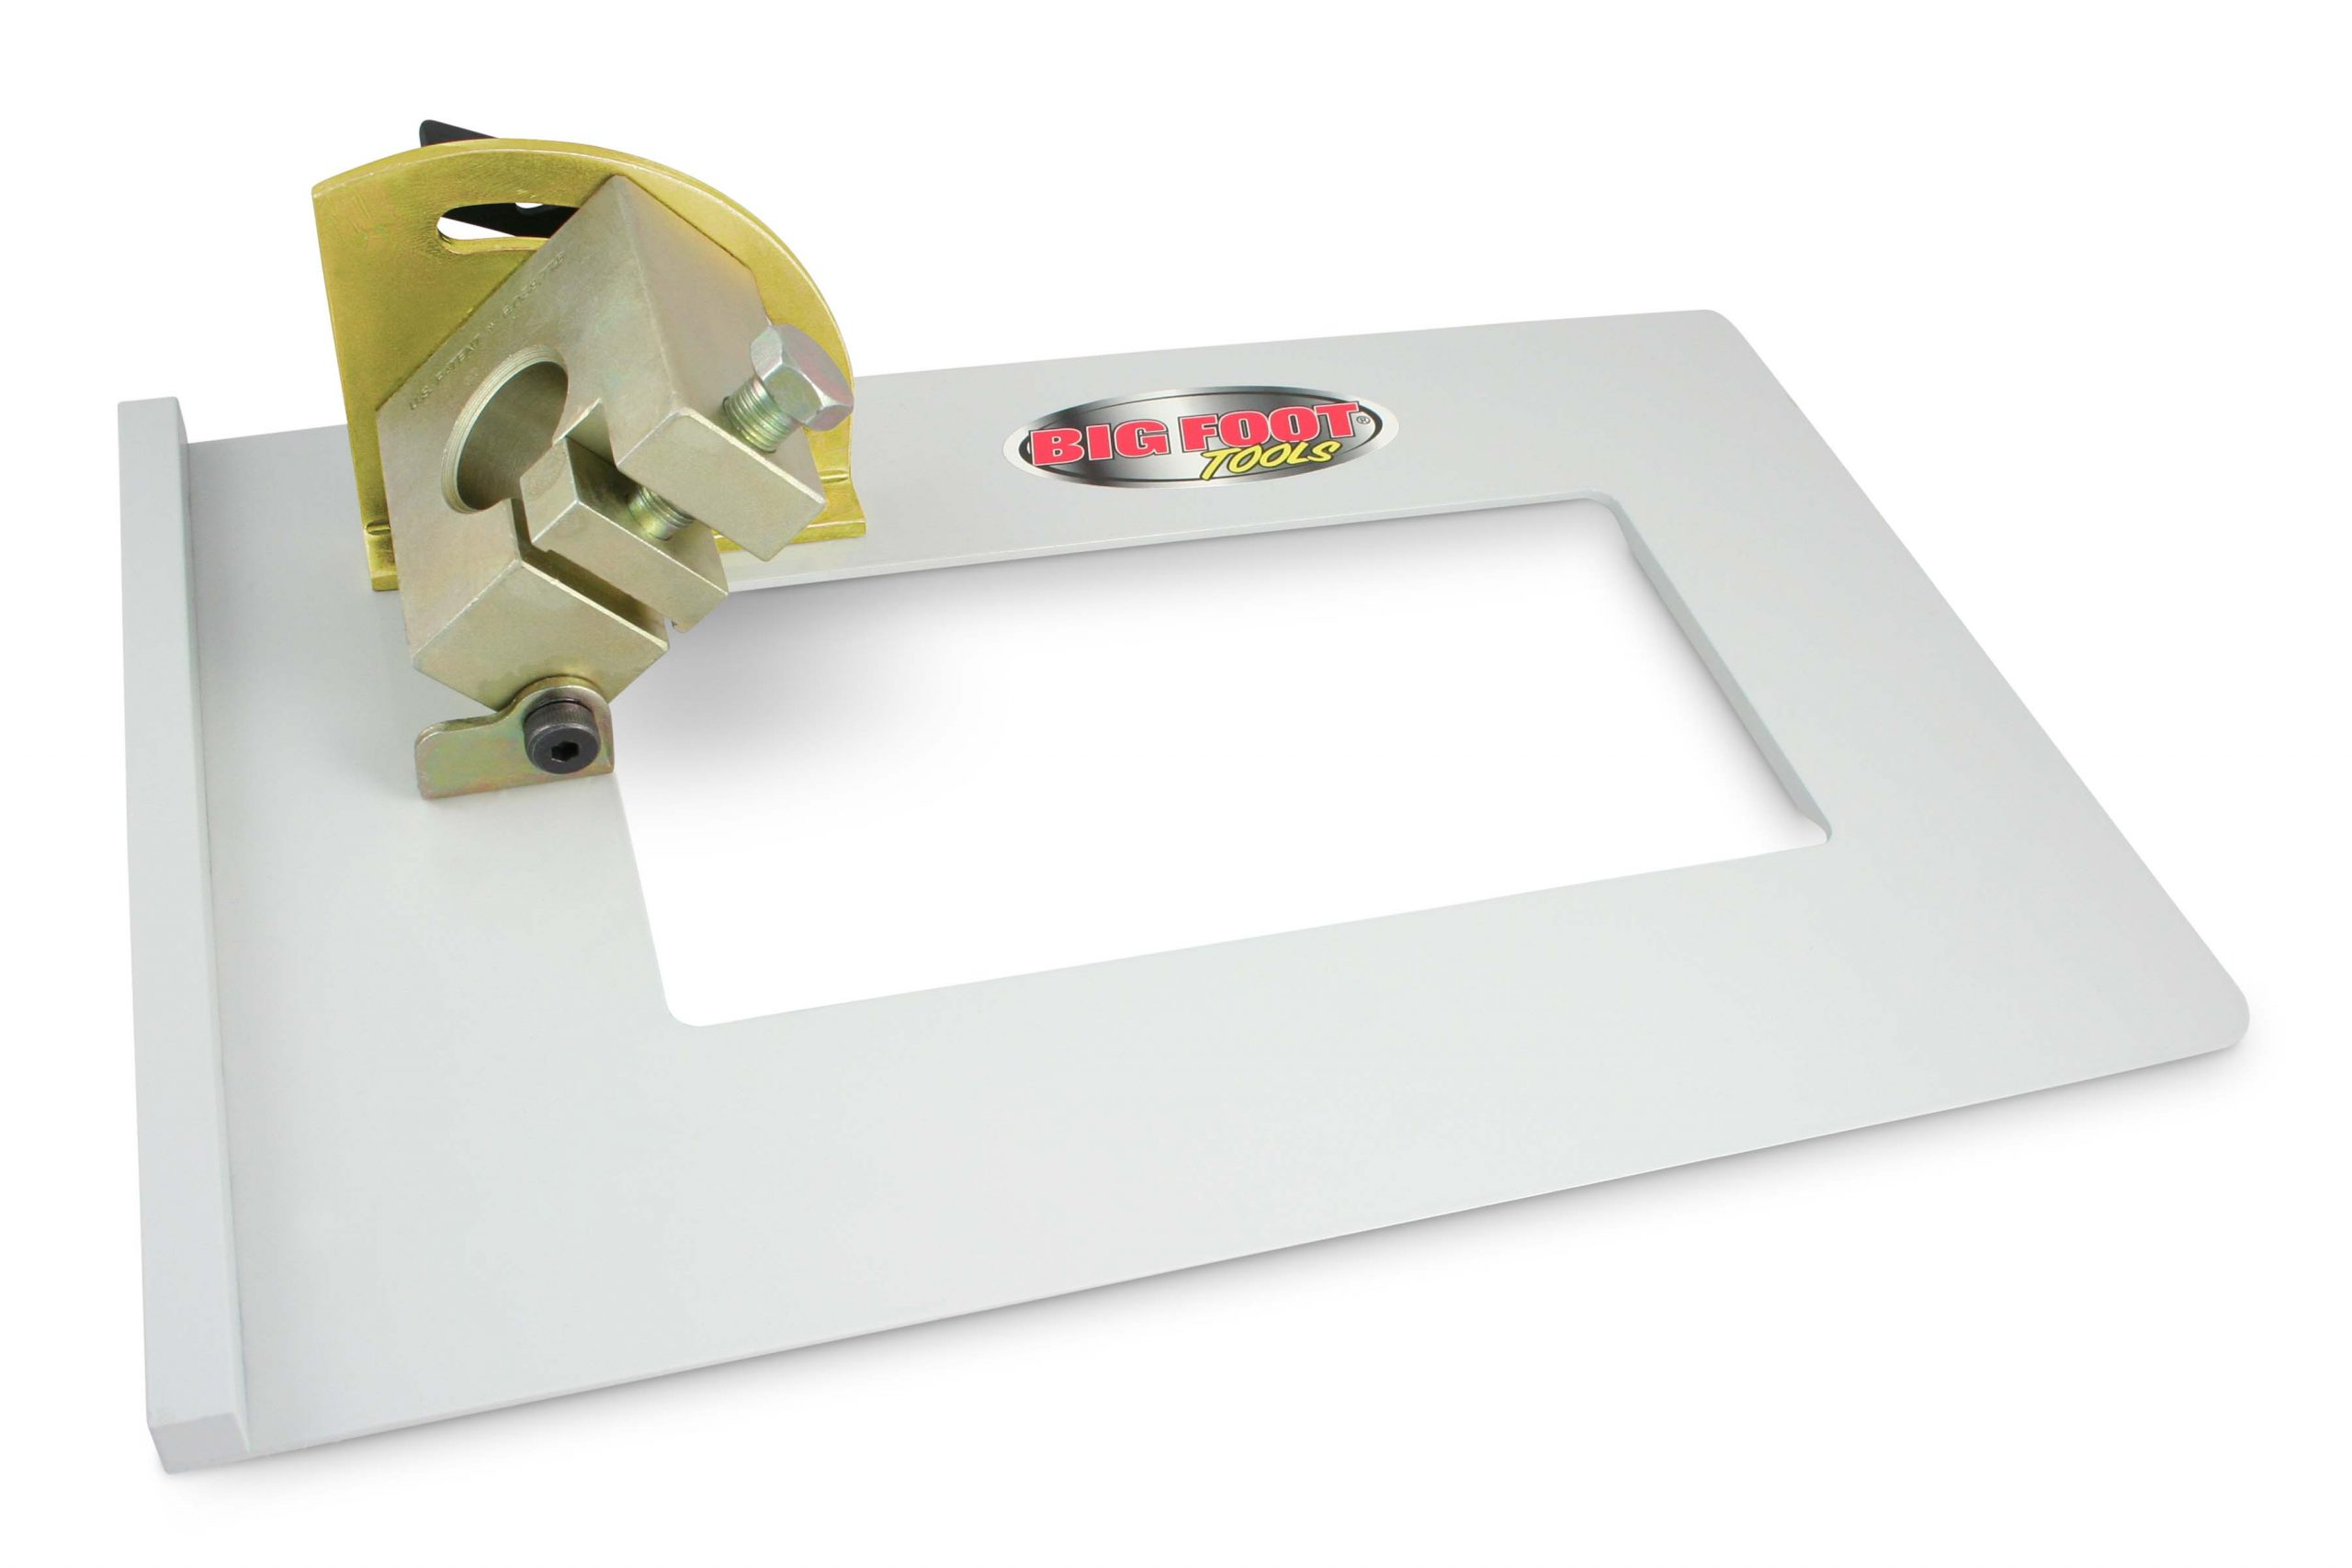 Big Foot Head Cutter - Powder Coated Aluminum Base Plate